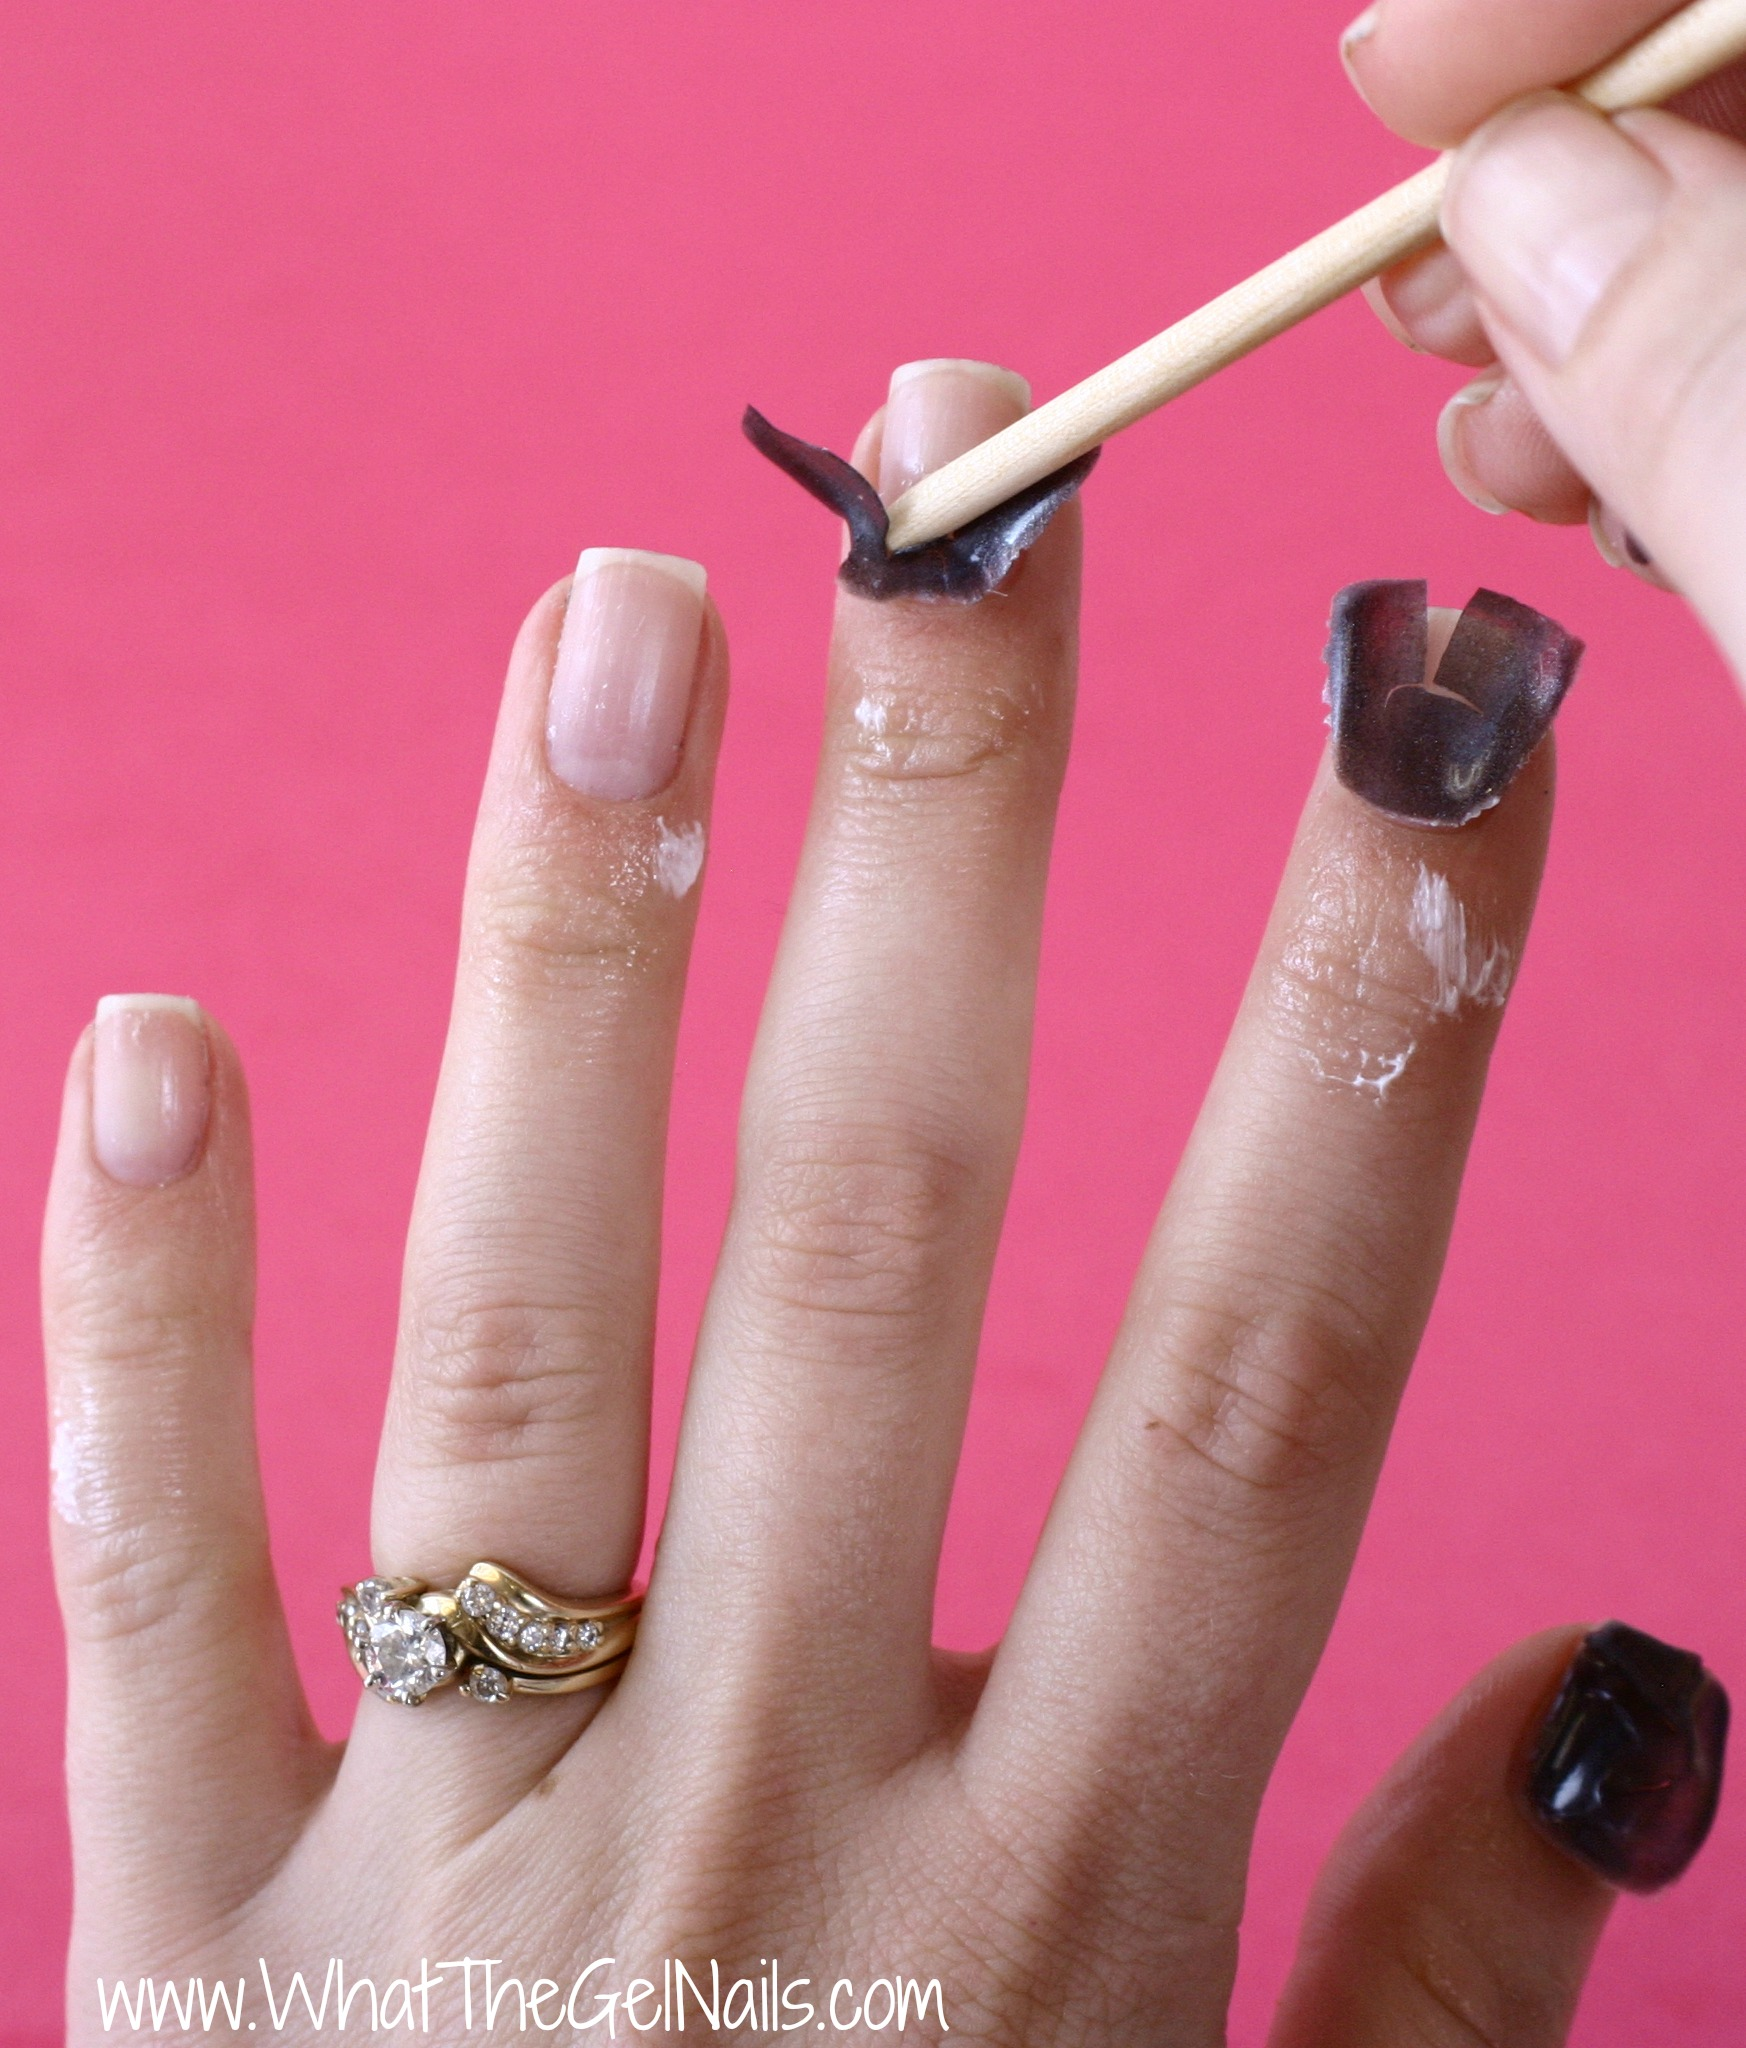 removal of gel nails photo - 1